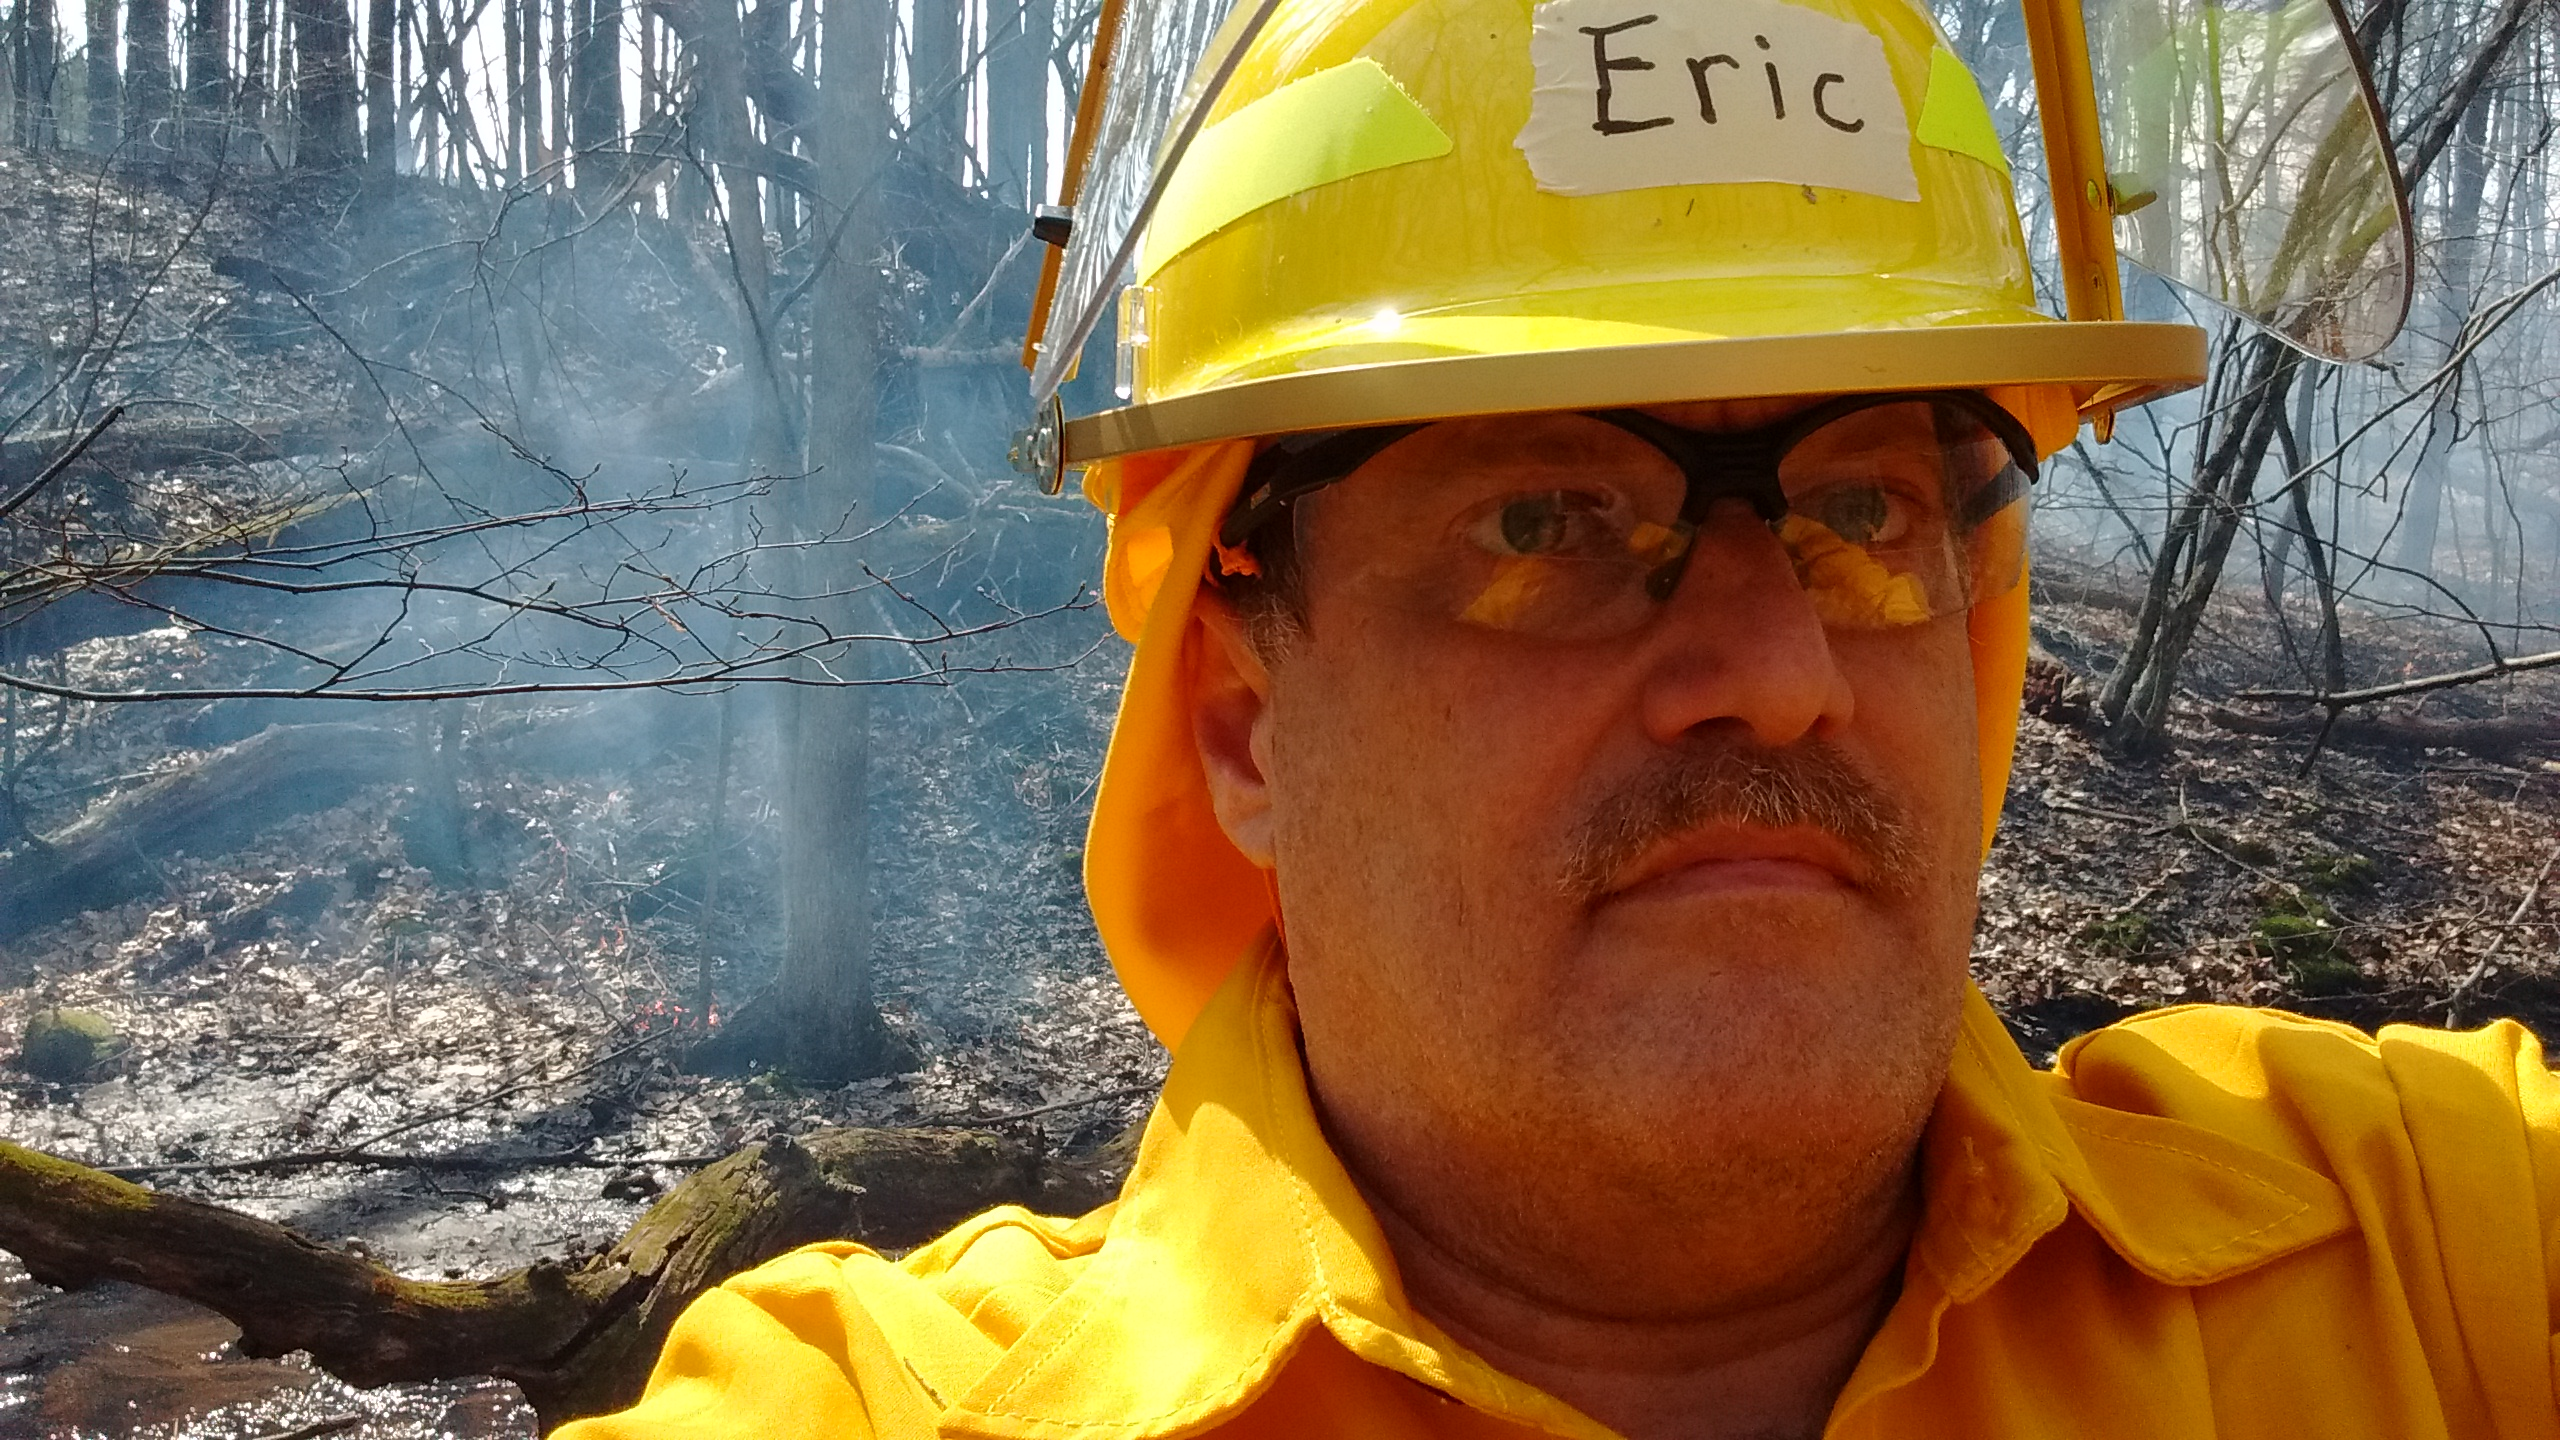 see larger photo of author working a prescribed burn